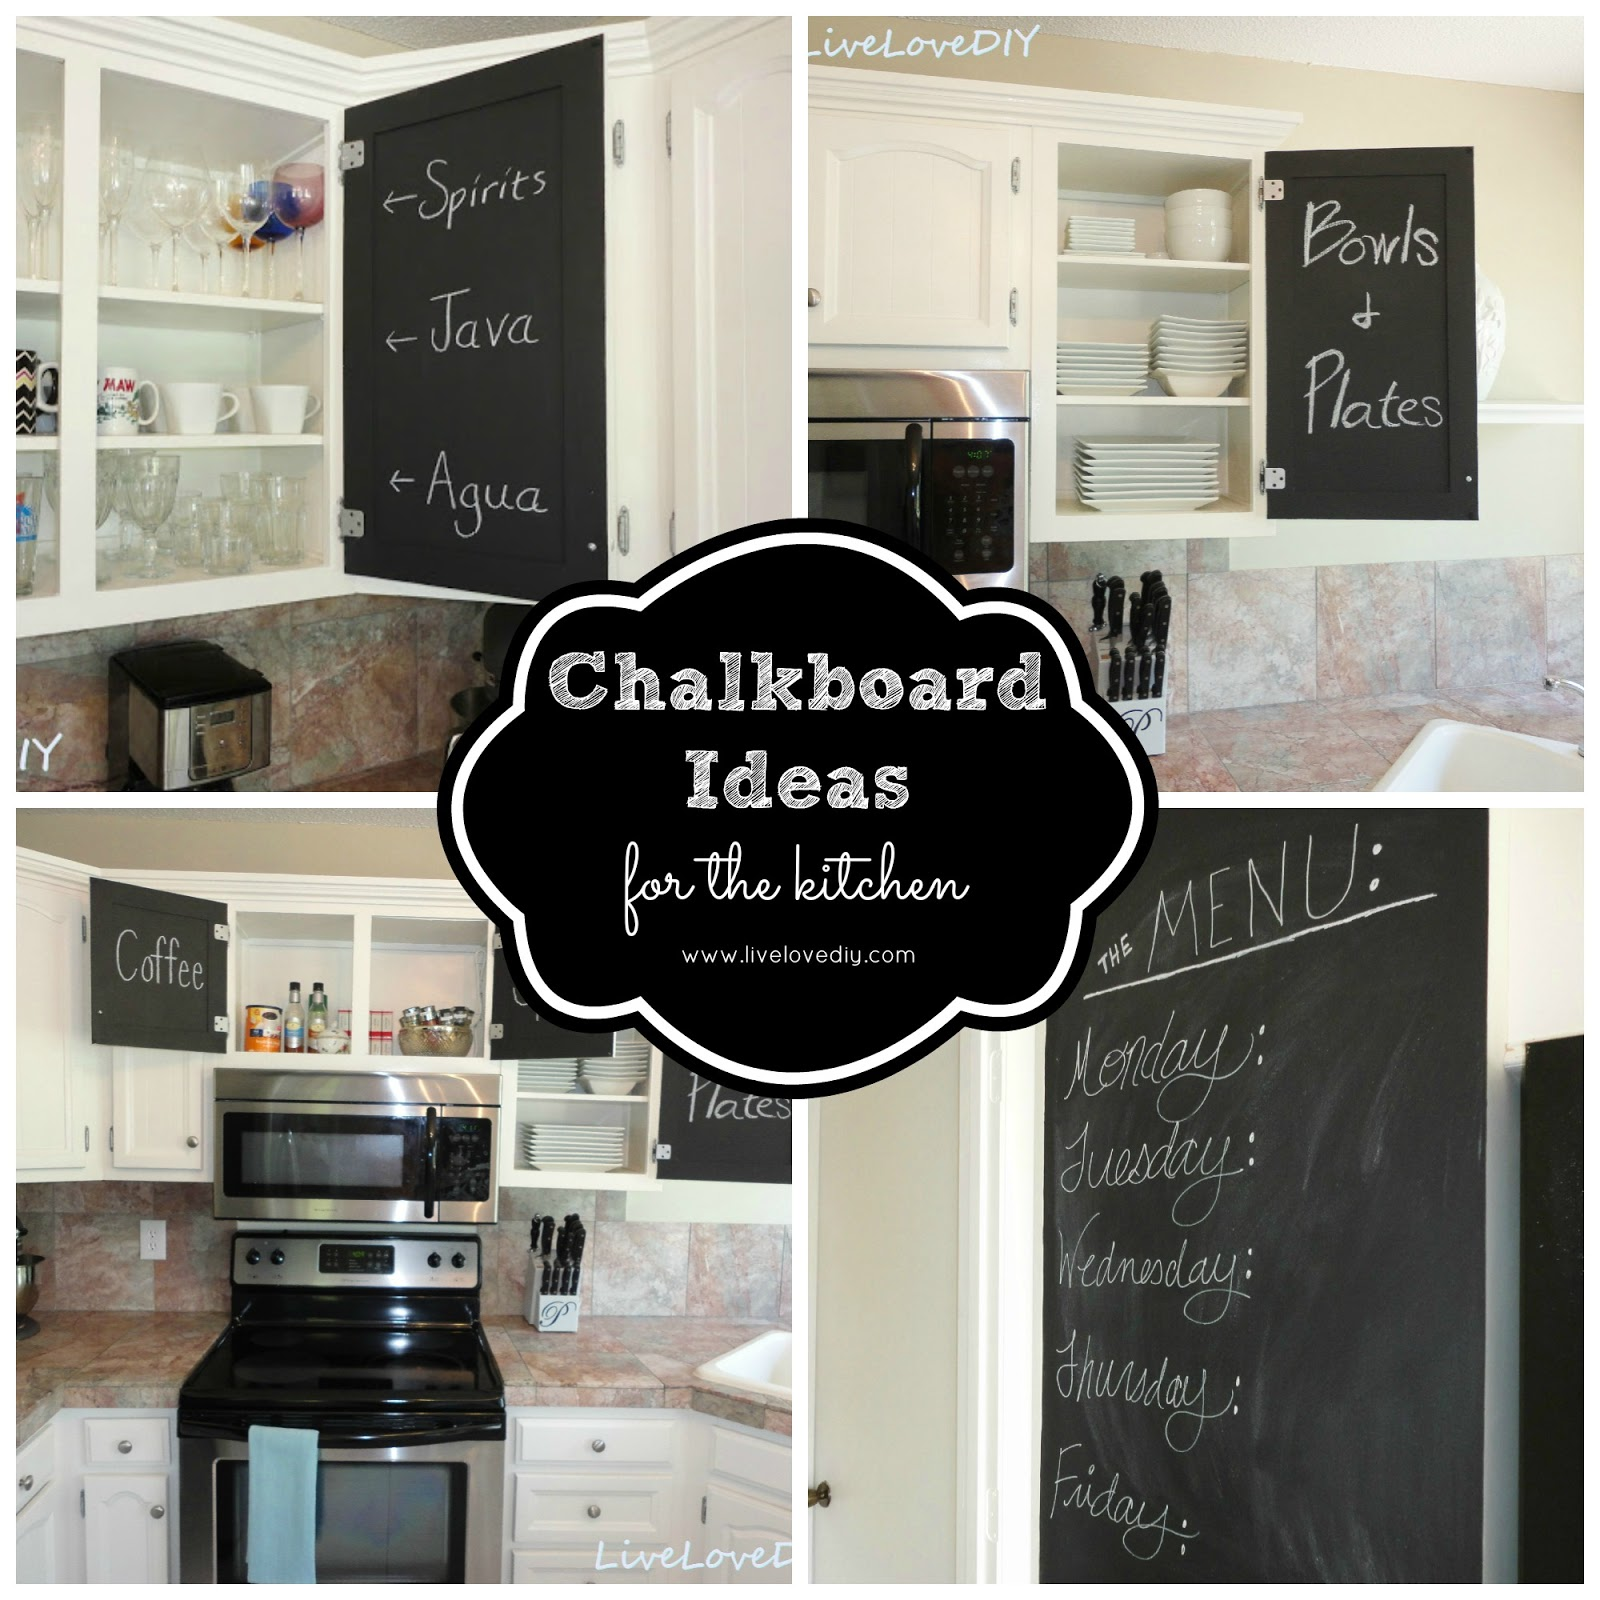 Chalk Painted Kitchen Cabinets 2 Years Later: 10 Home Improvement Ideas: How To Make The Most Of What